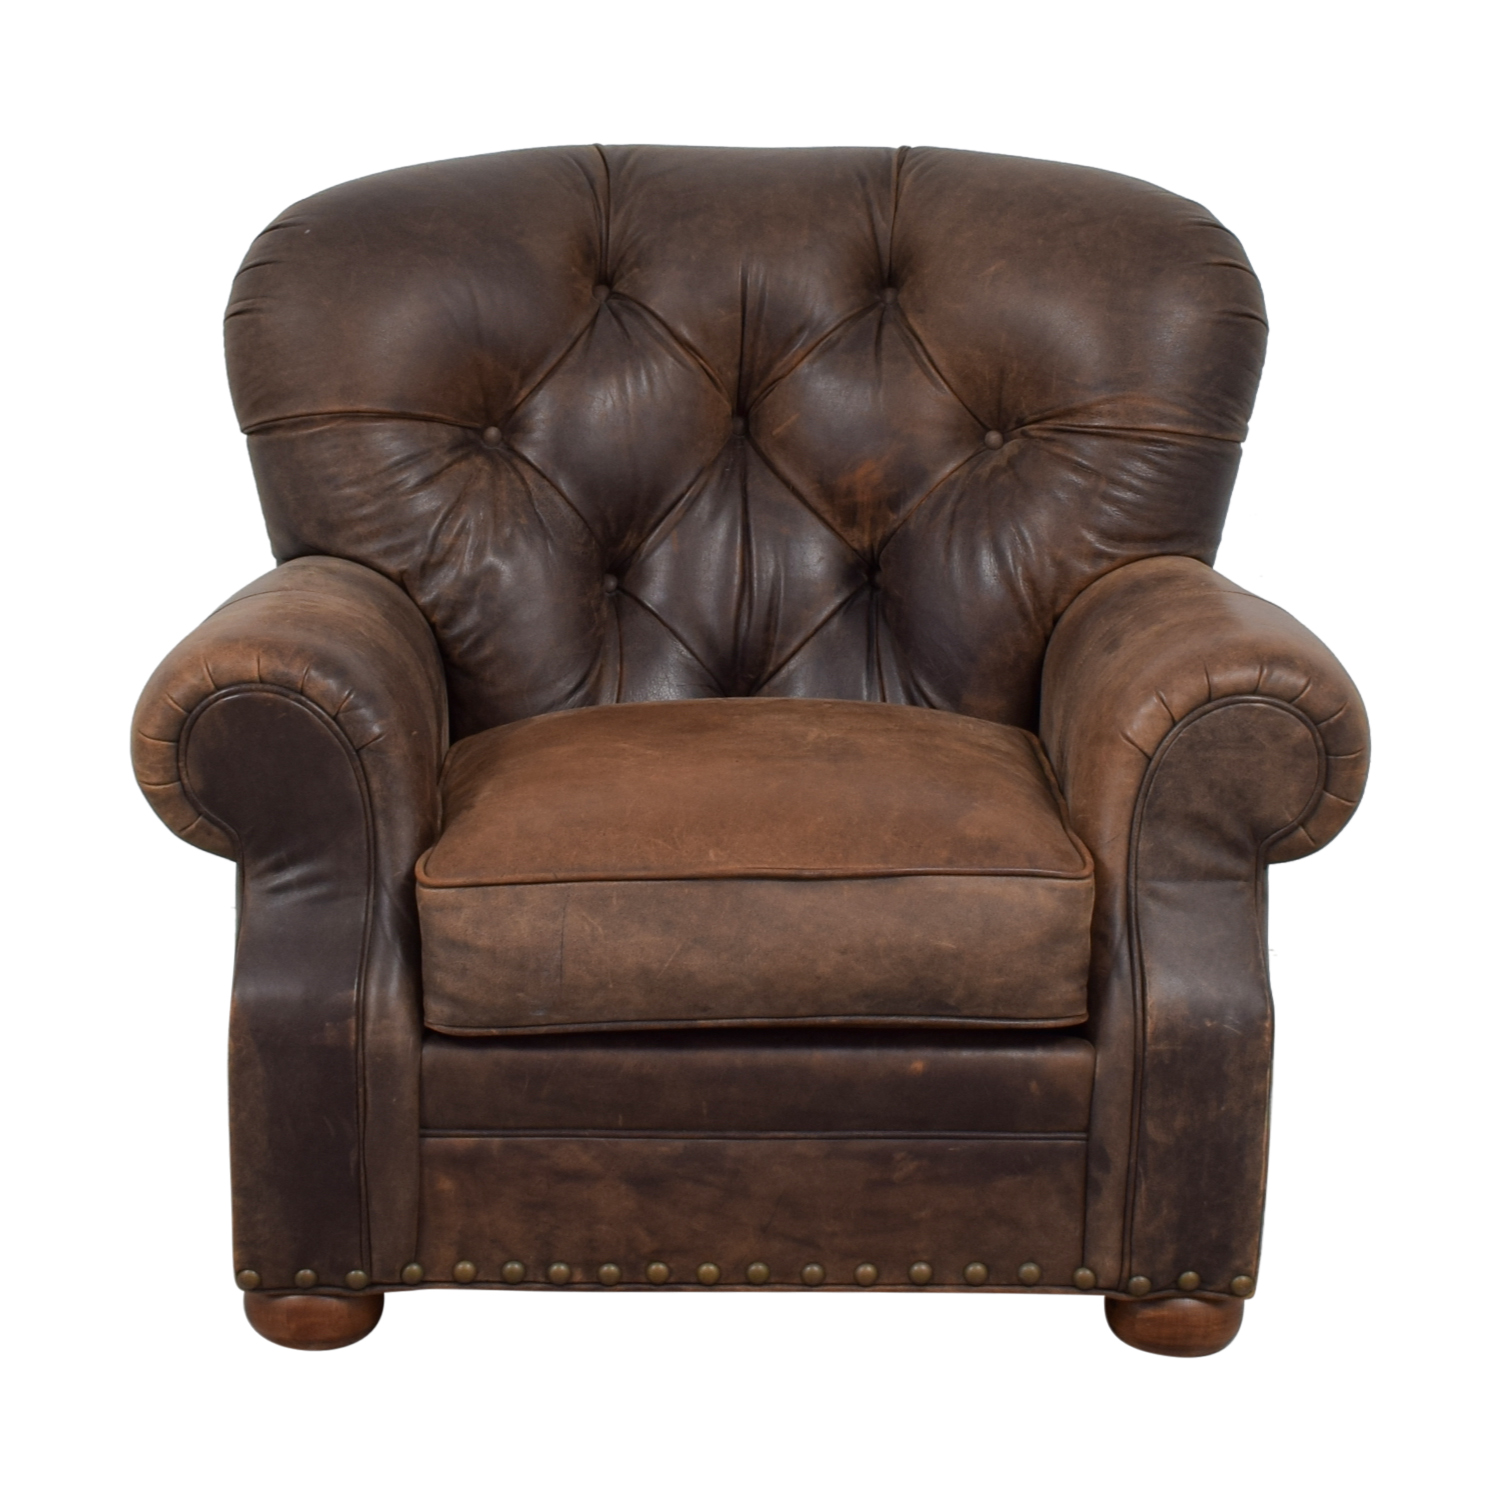 Enjoyable 88 Off Restoration Hardware Restoration Hardware Churchill Brown Leather Tufted Nailhead Chair Chairs Ocoug Best Dining Table And Chair Ideas Images Ocougorg